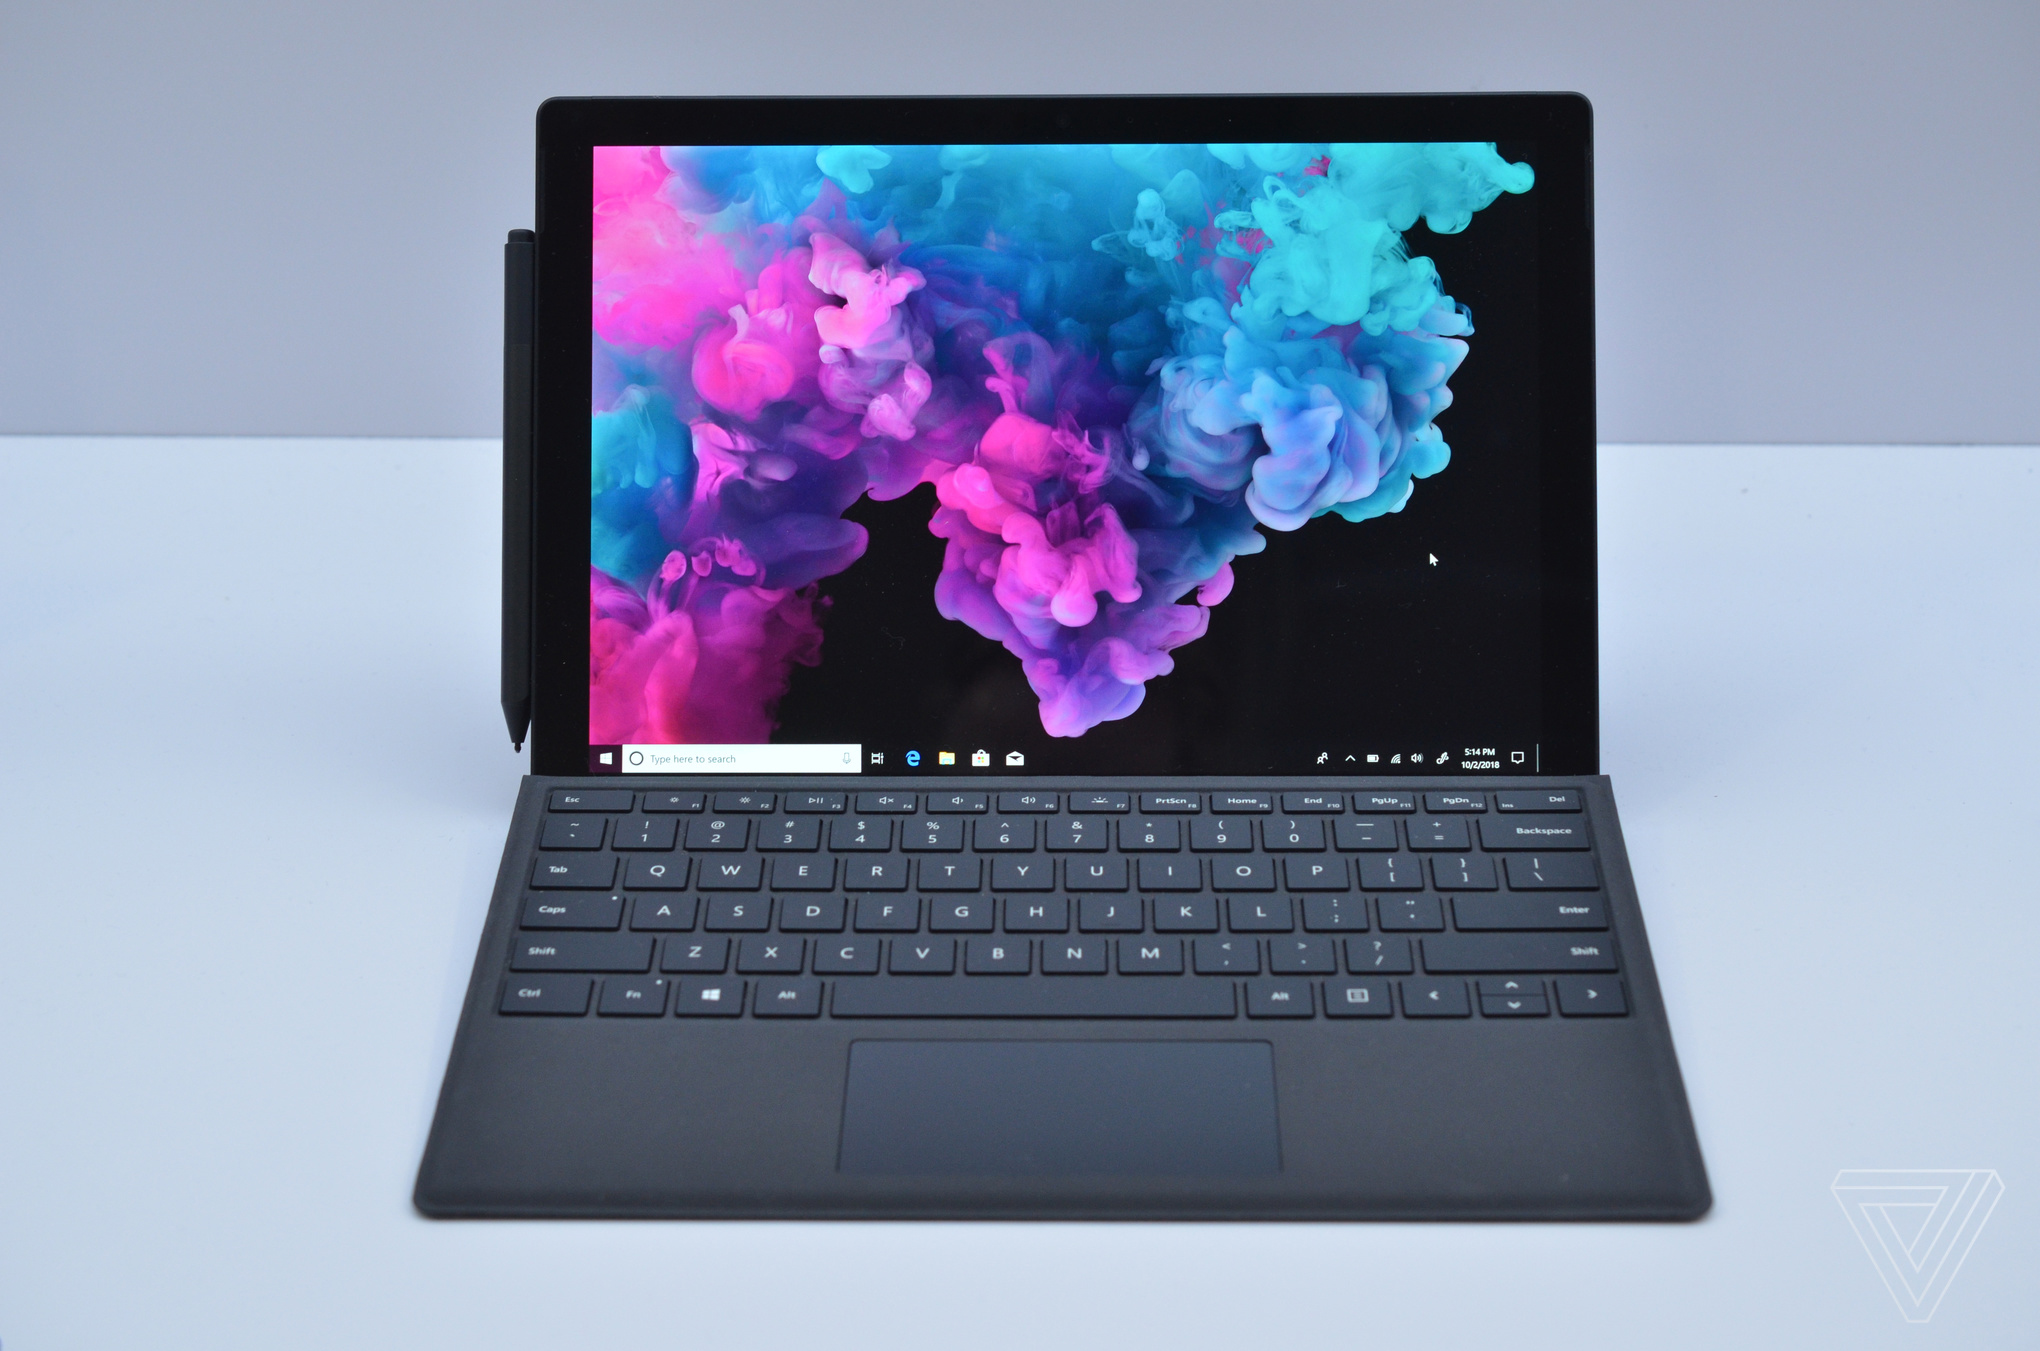 4b4cc3b543e Microsoft Surface Pro 6 in matte black hands-on - The Verge